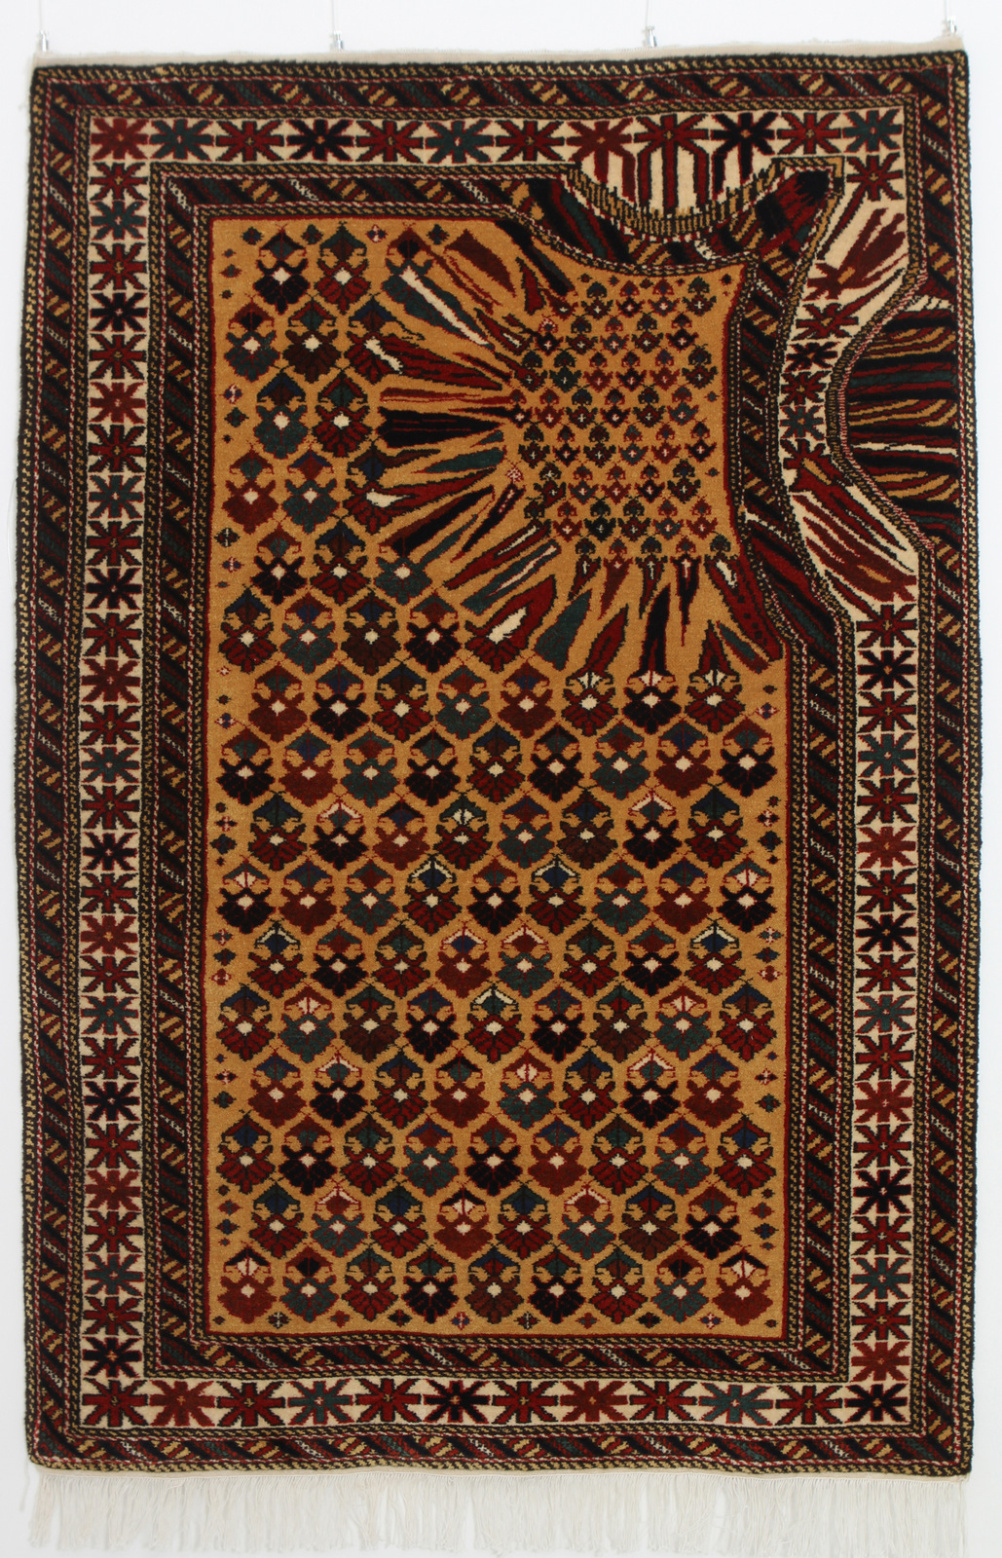 Faig Ahmed, Hollow 2011, (Wool warp, weft and pile)